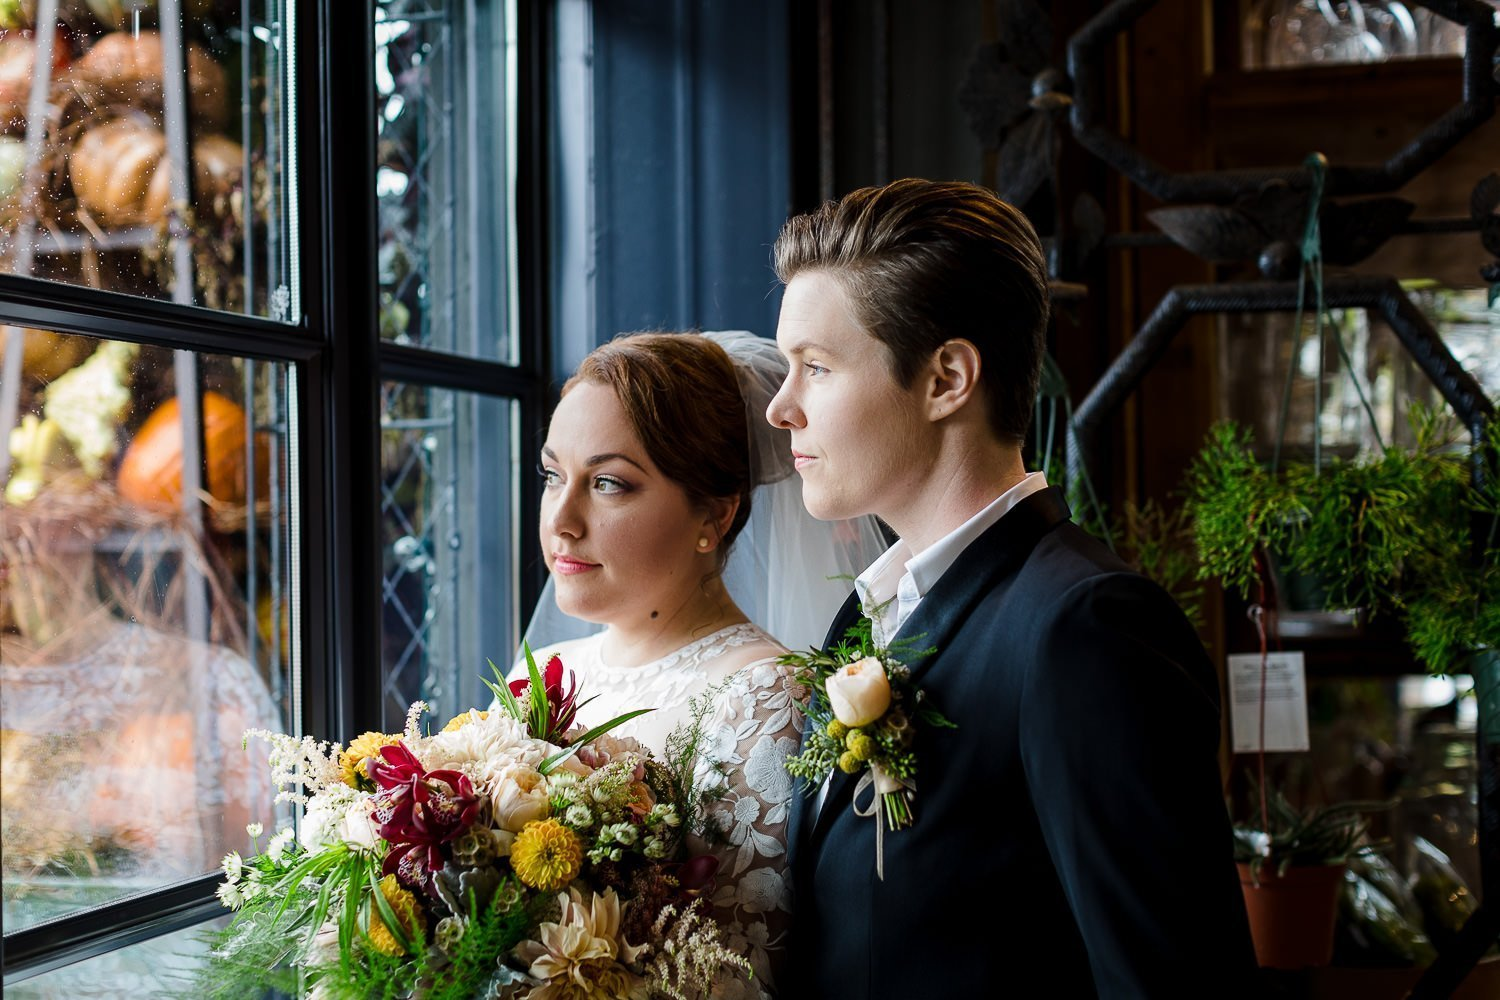 Two brides gaze out of the window at Terrain garden store in westport ct